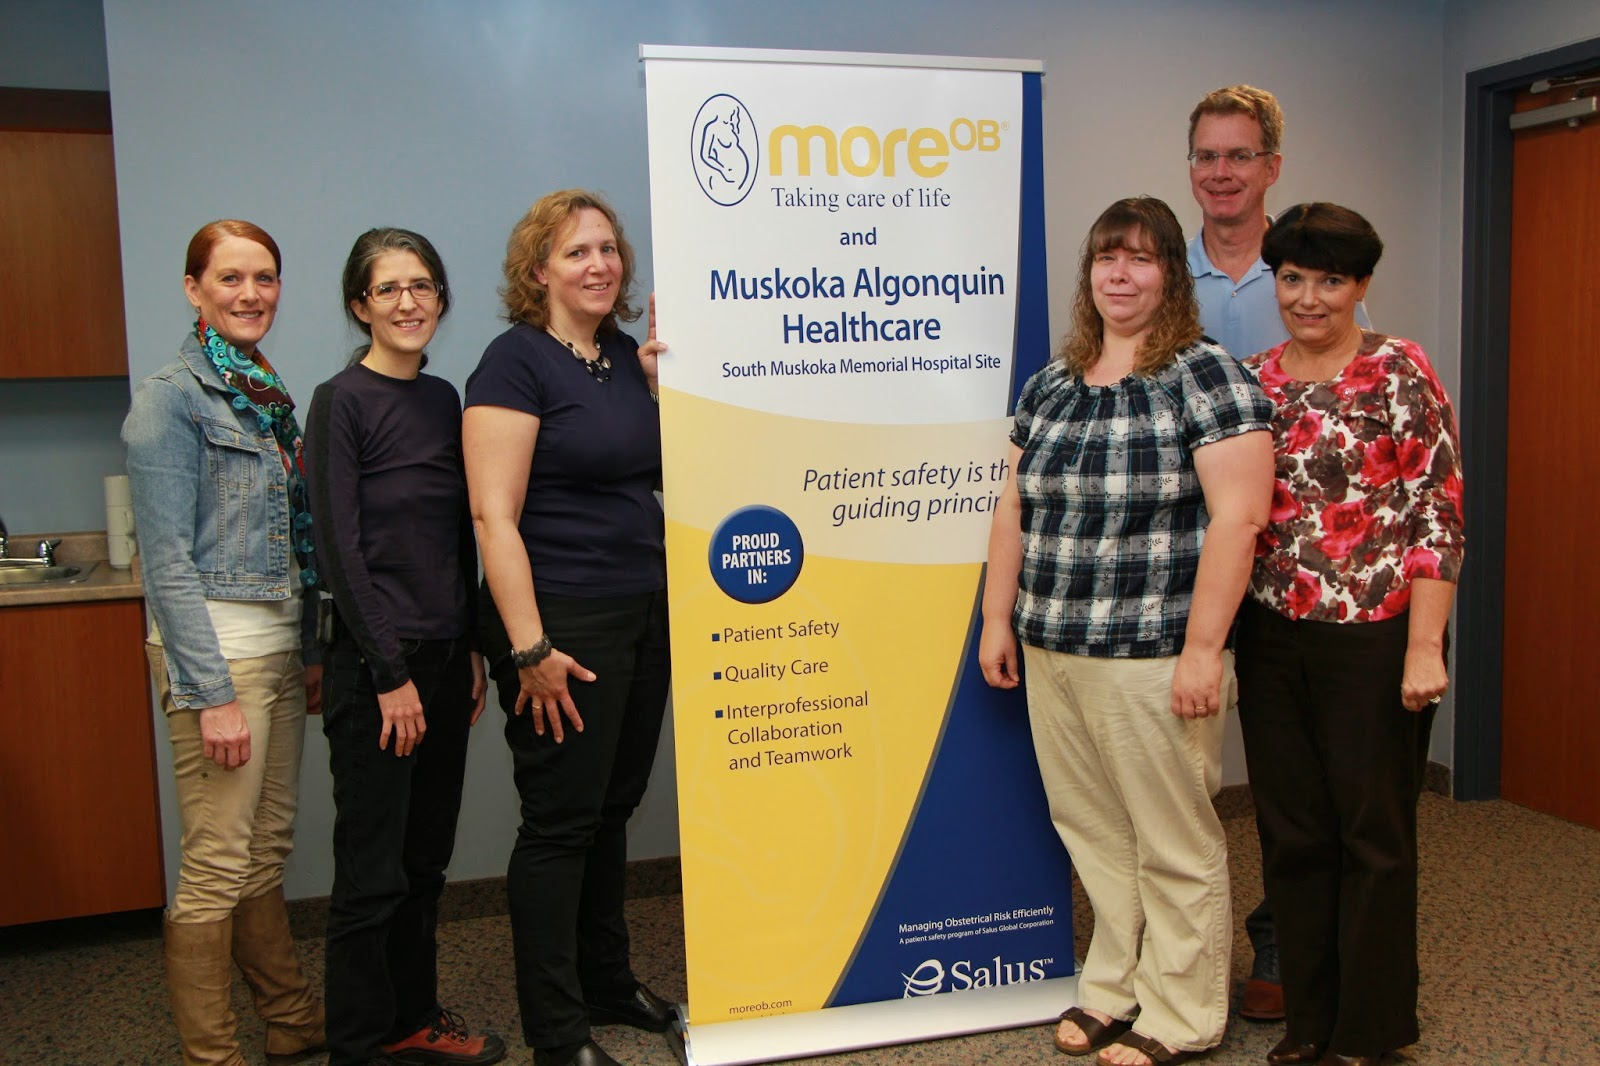 The Obstetrical Units at MAHC's hospital sites have joined the MOREOB program as part of our ongoing commitment to deliver safe, high-quality care.